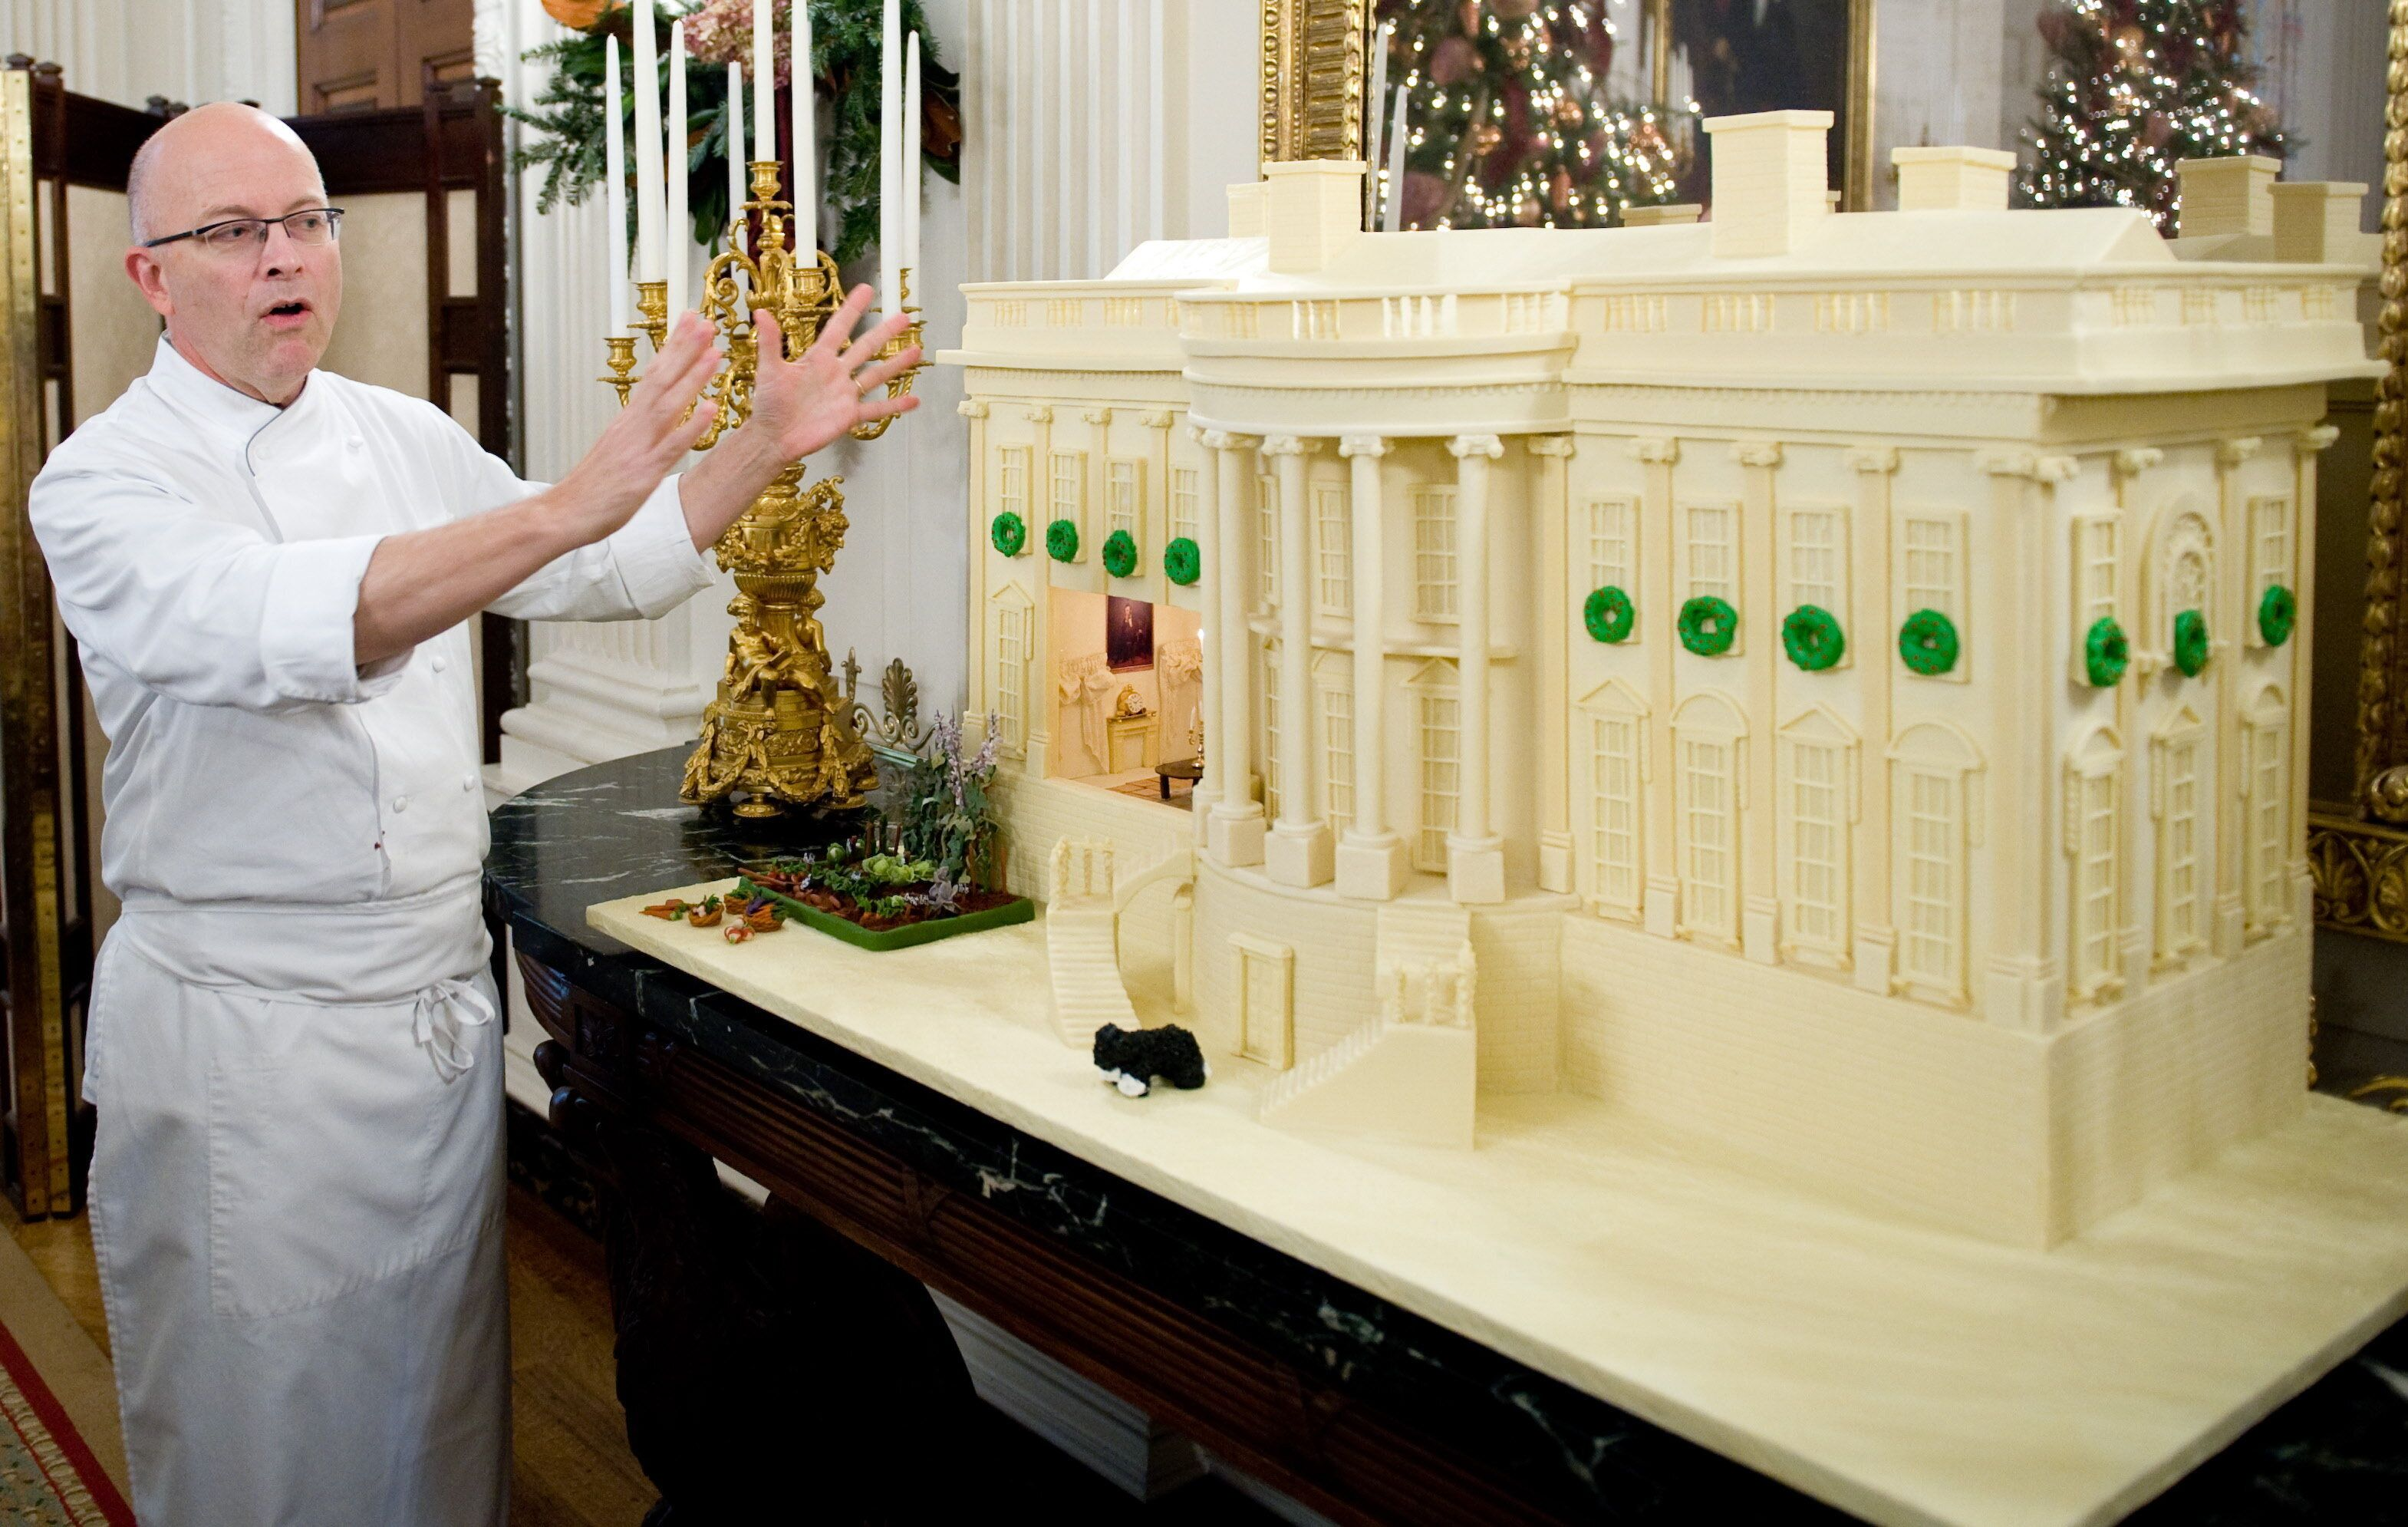 Yosses explains his design for the official White House gingerbread house in 2009.